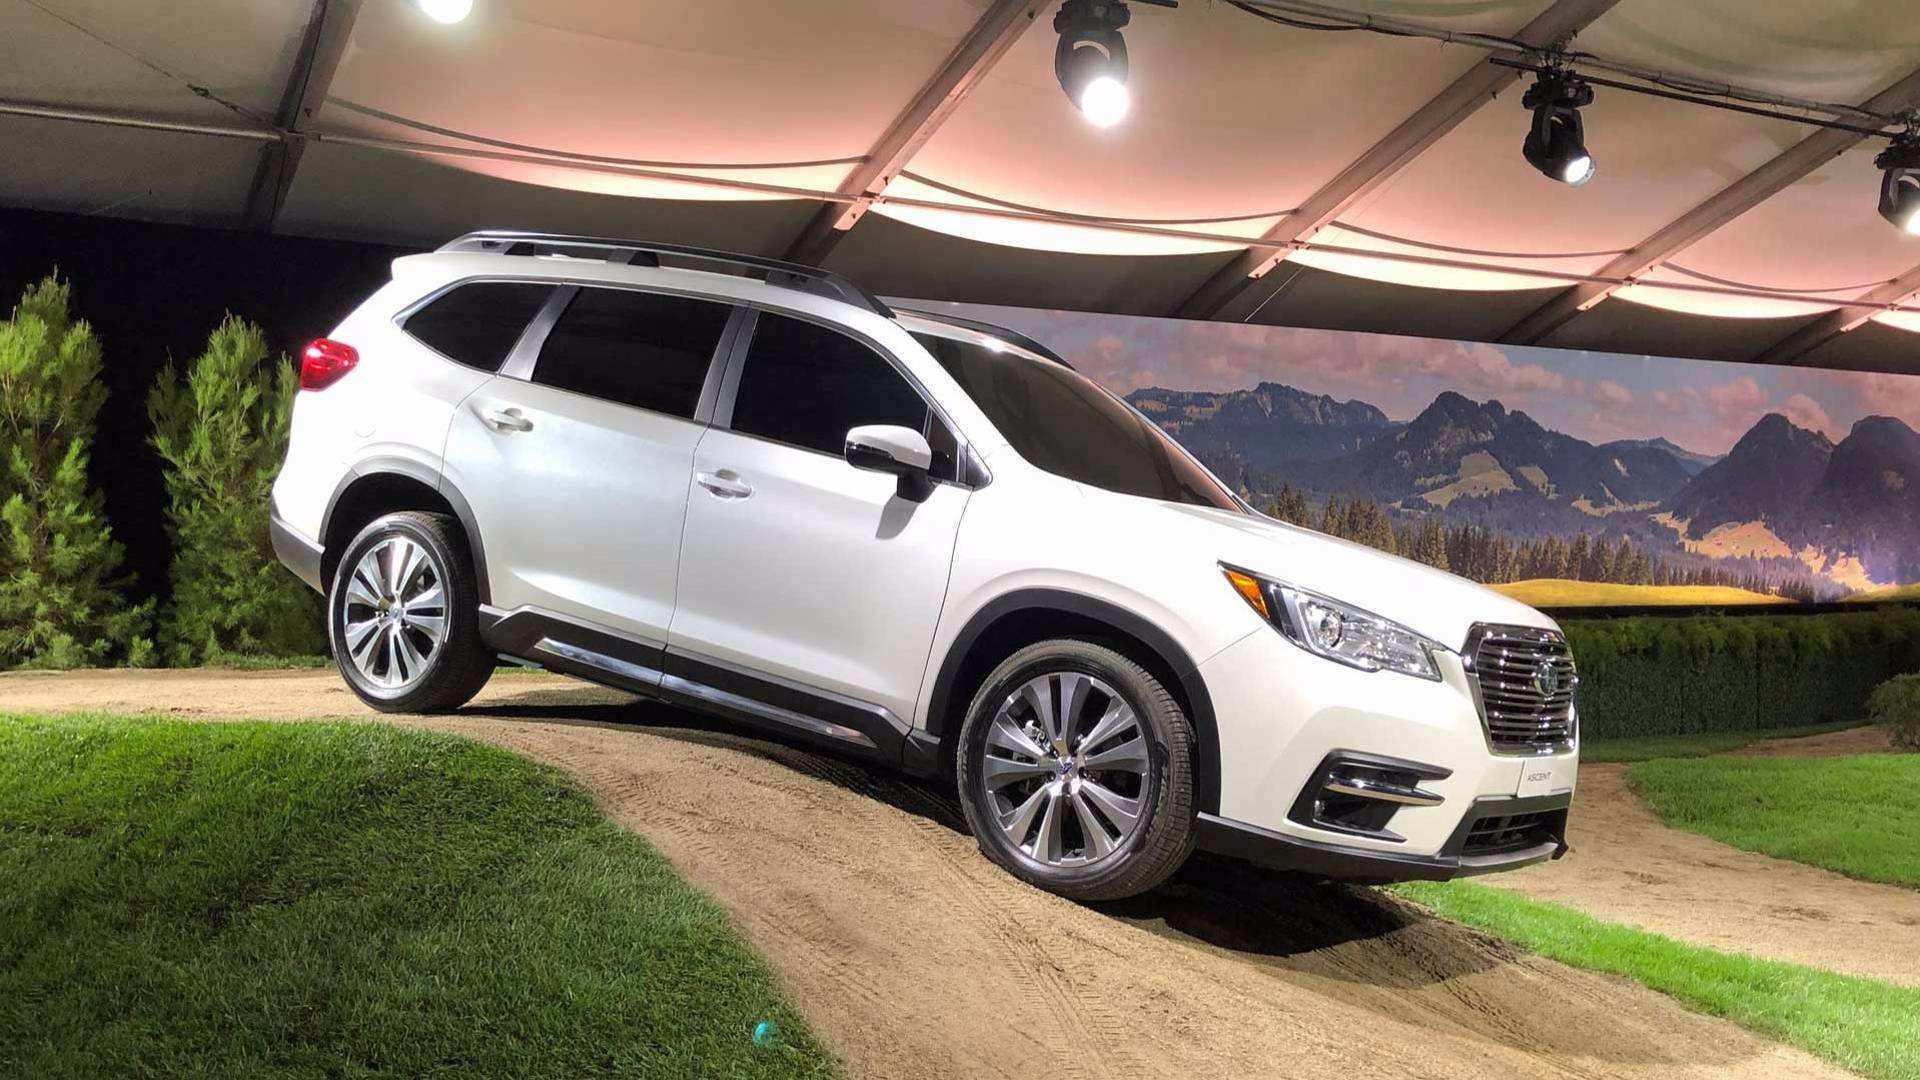 70 The Best Subaru Ascent 2019 Engine Exterior And Interior